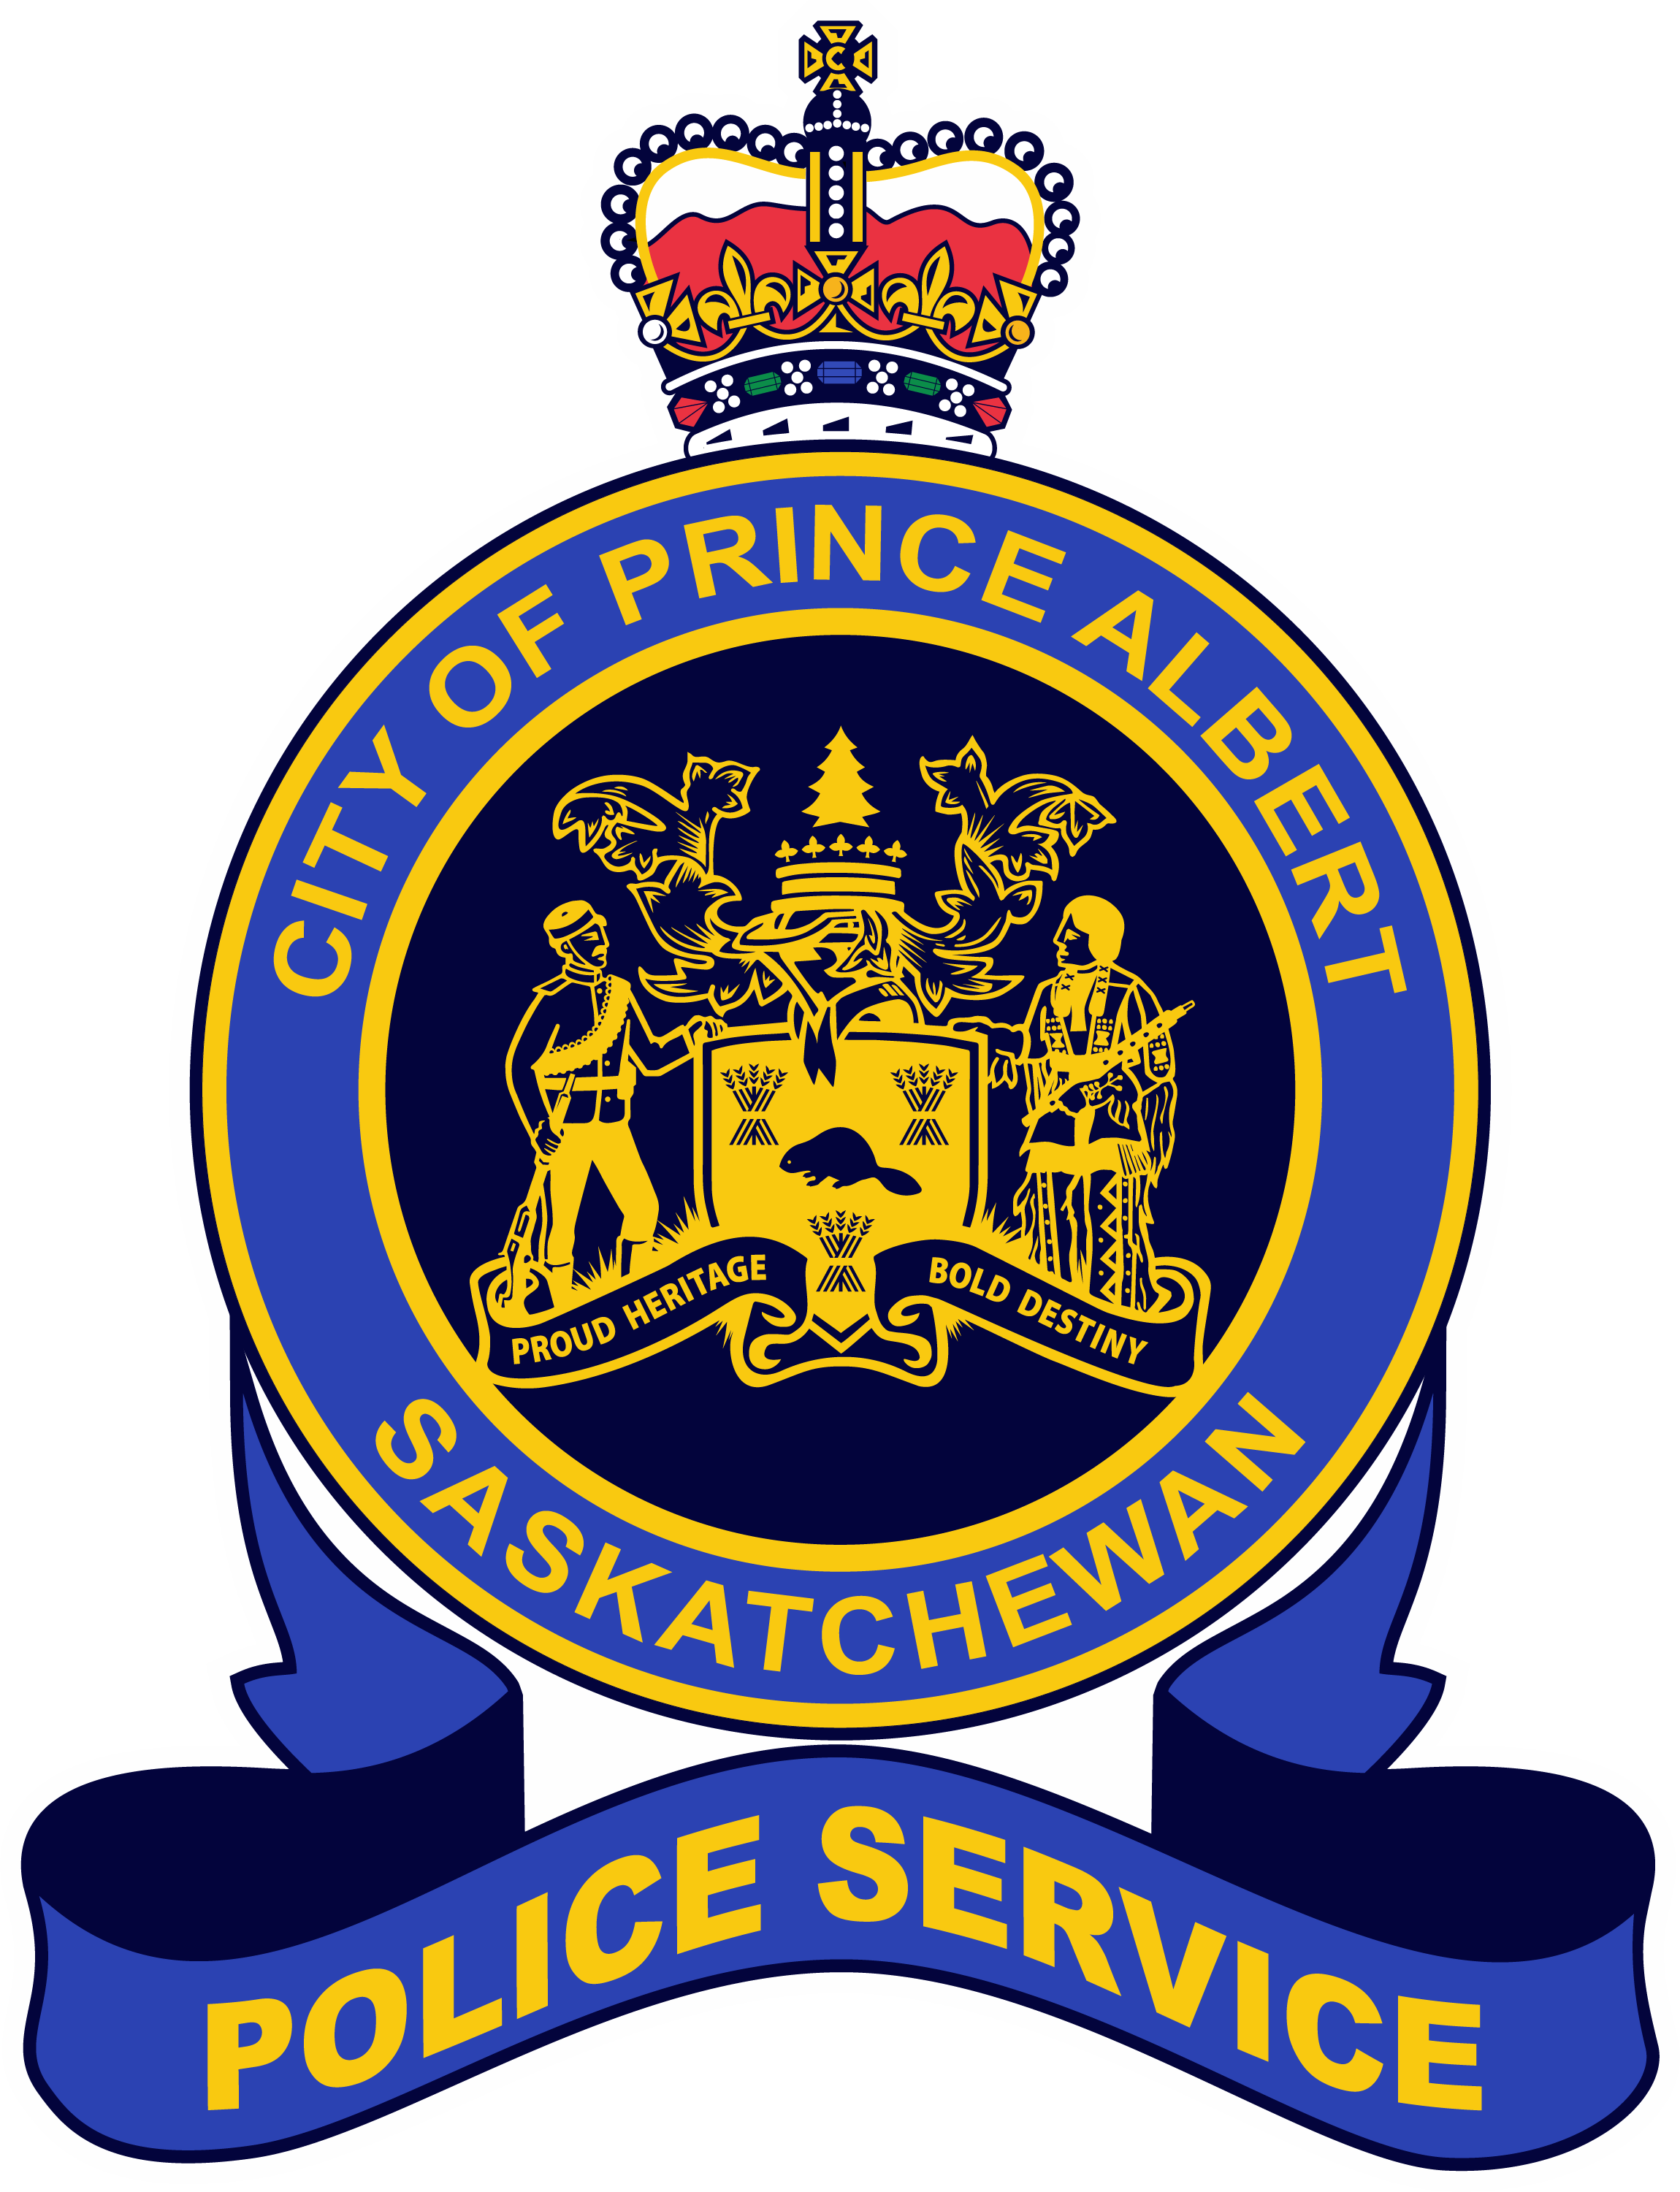 Media Release - Prince Albert Police Officer Tests Positive for COVID-19